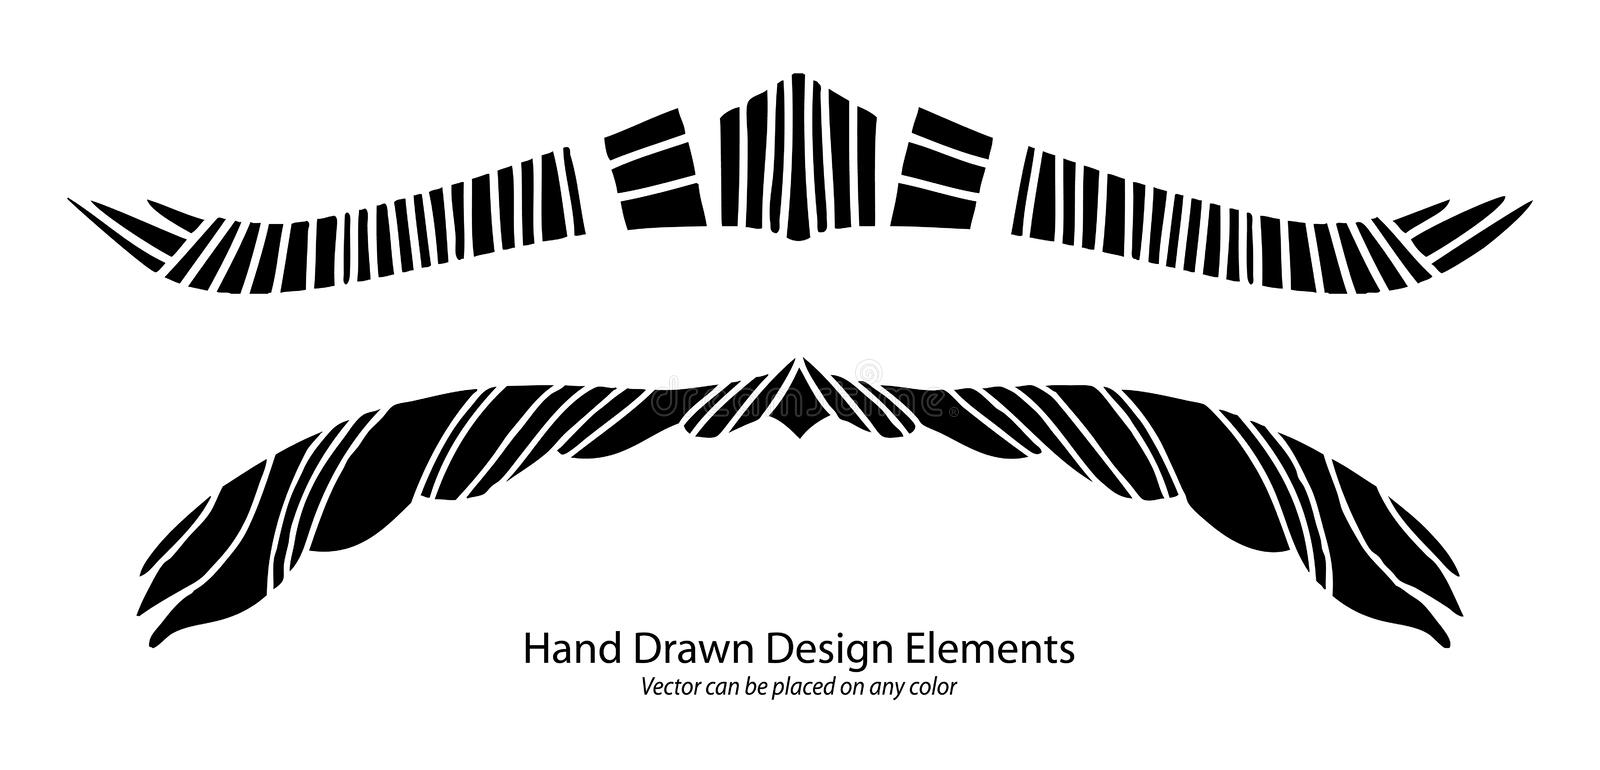 Unique abstract design element vector, paragraph or text divider with striped symmetrical pattern, stylized artsy wings and horns stock photos